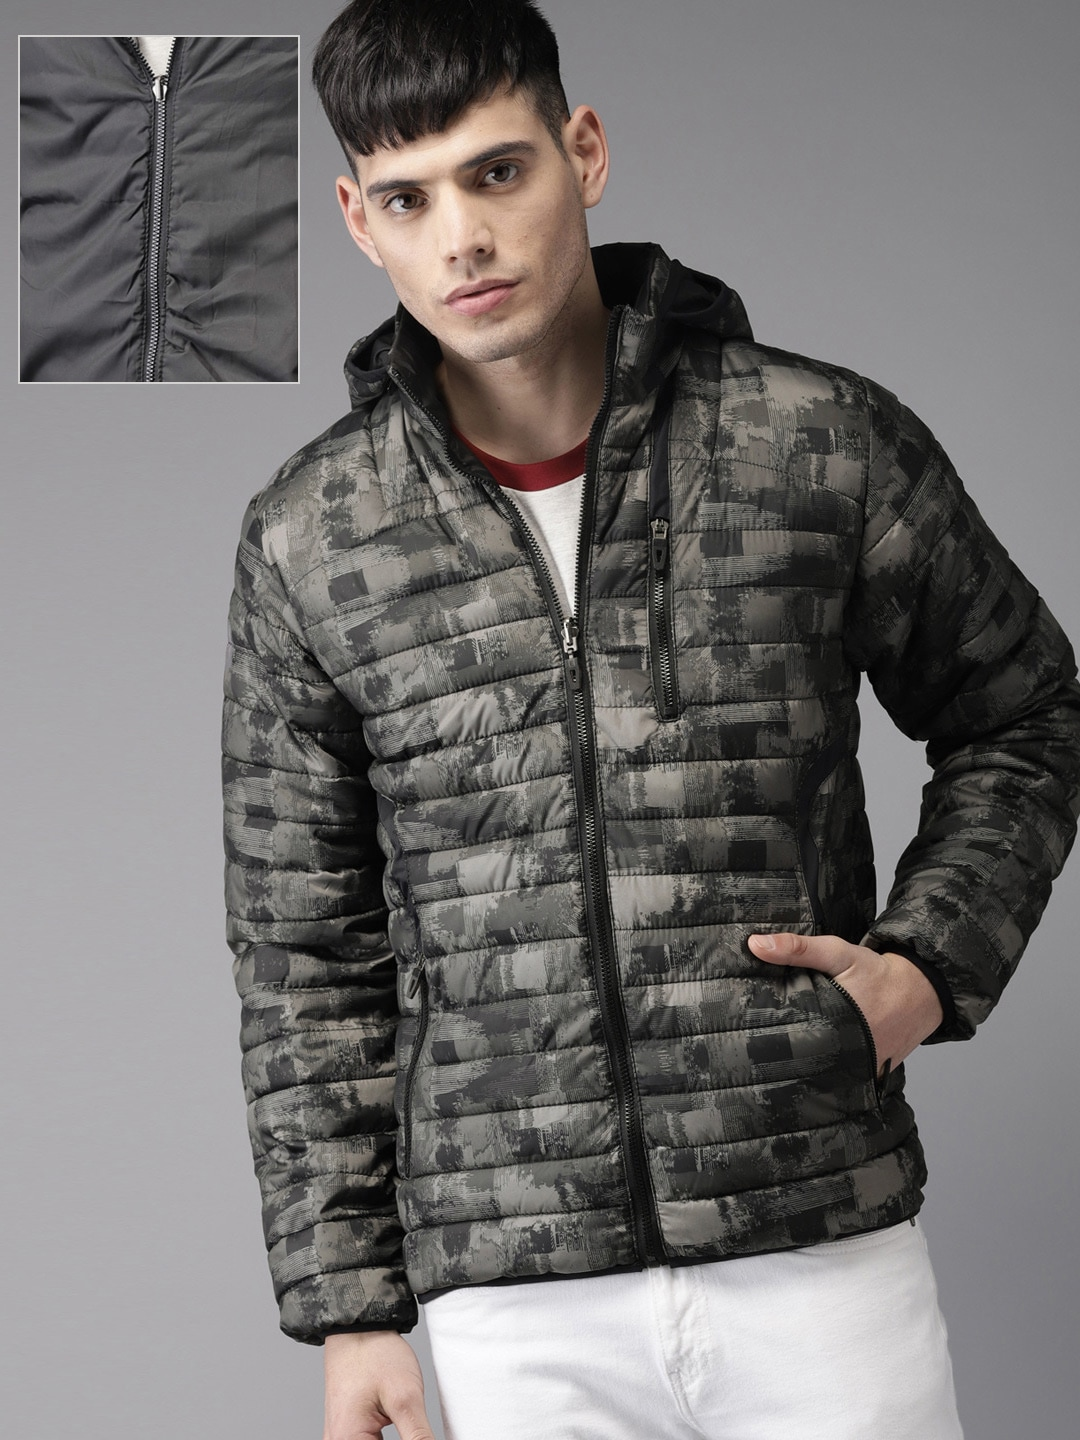 Reversible Jackets - Buy Reversible Jackets online in India 0be9a1ac8